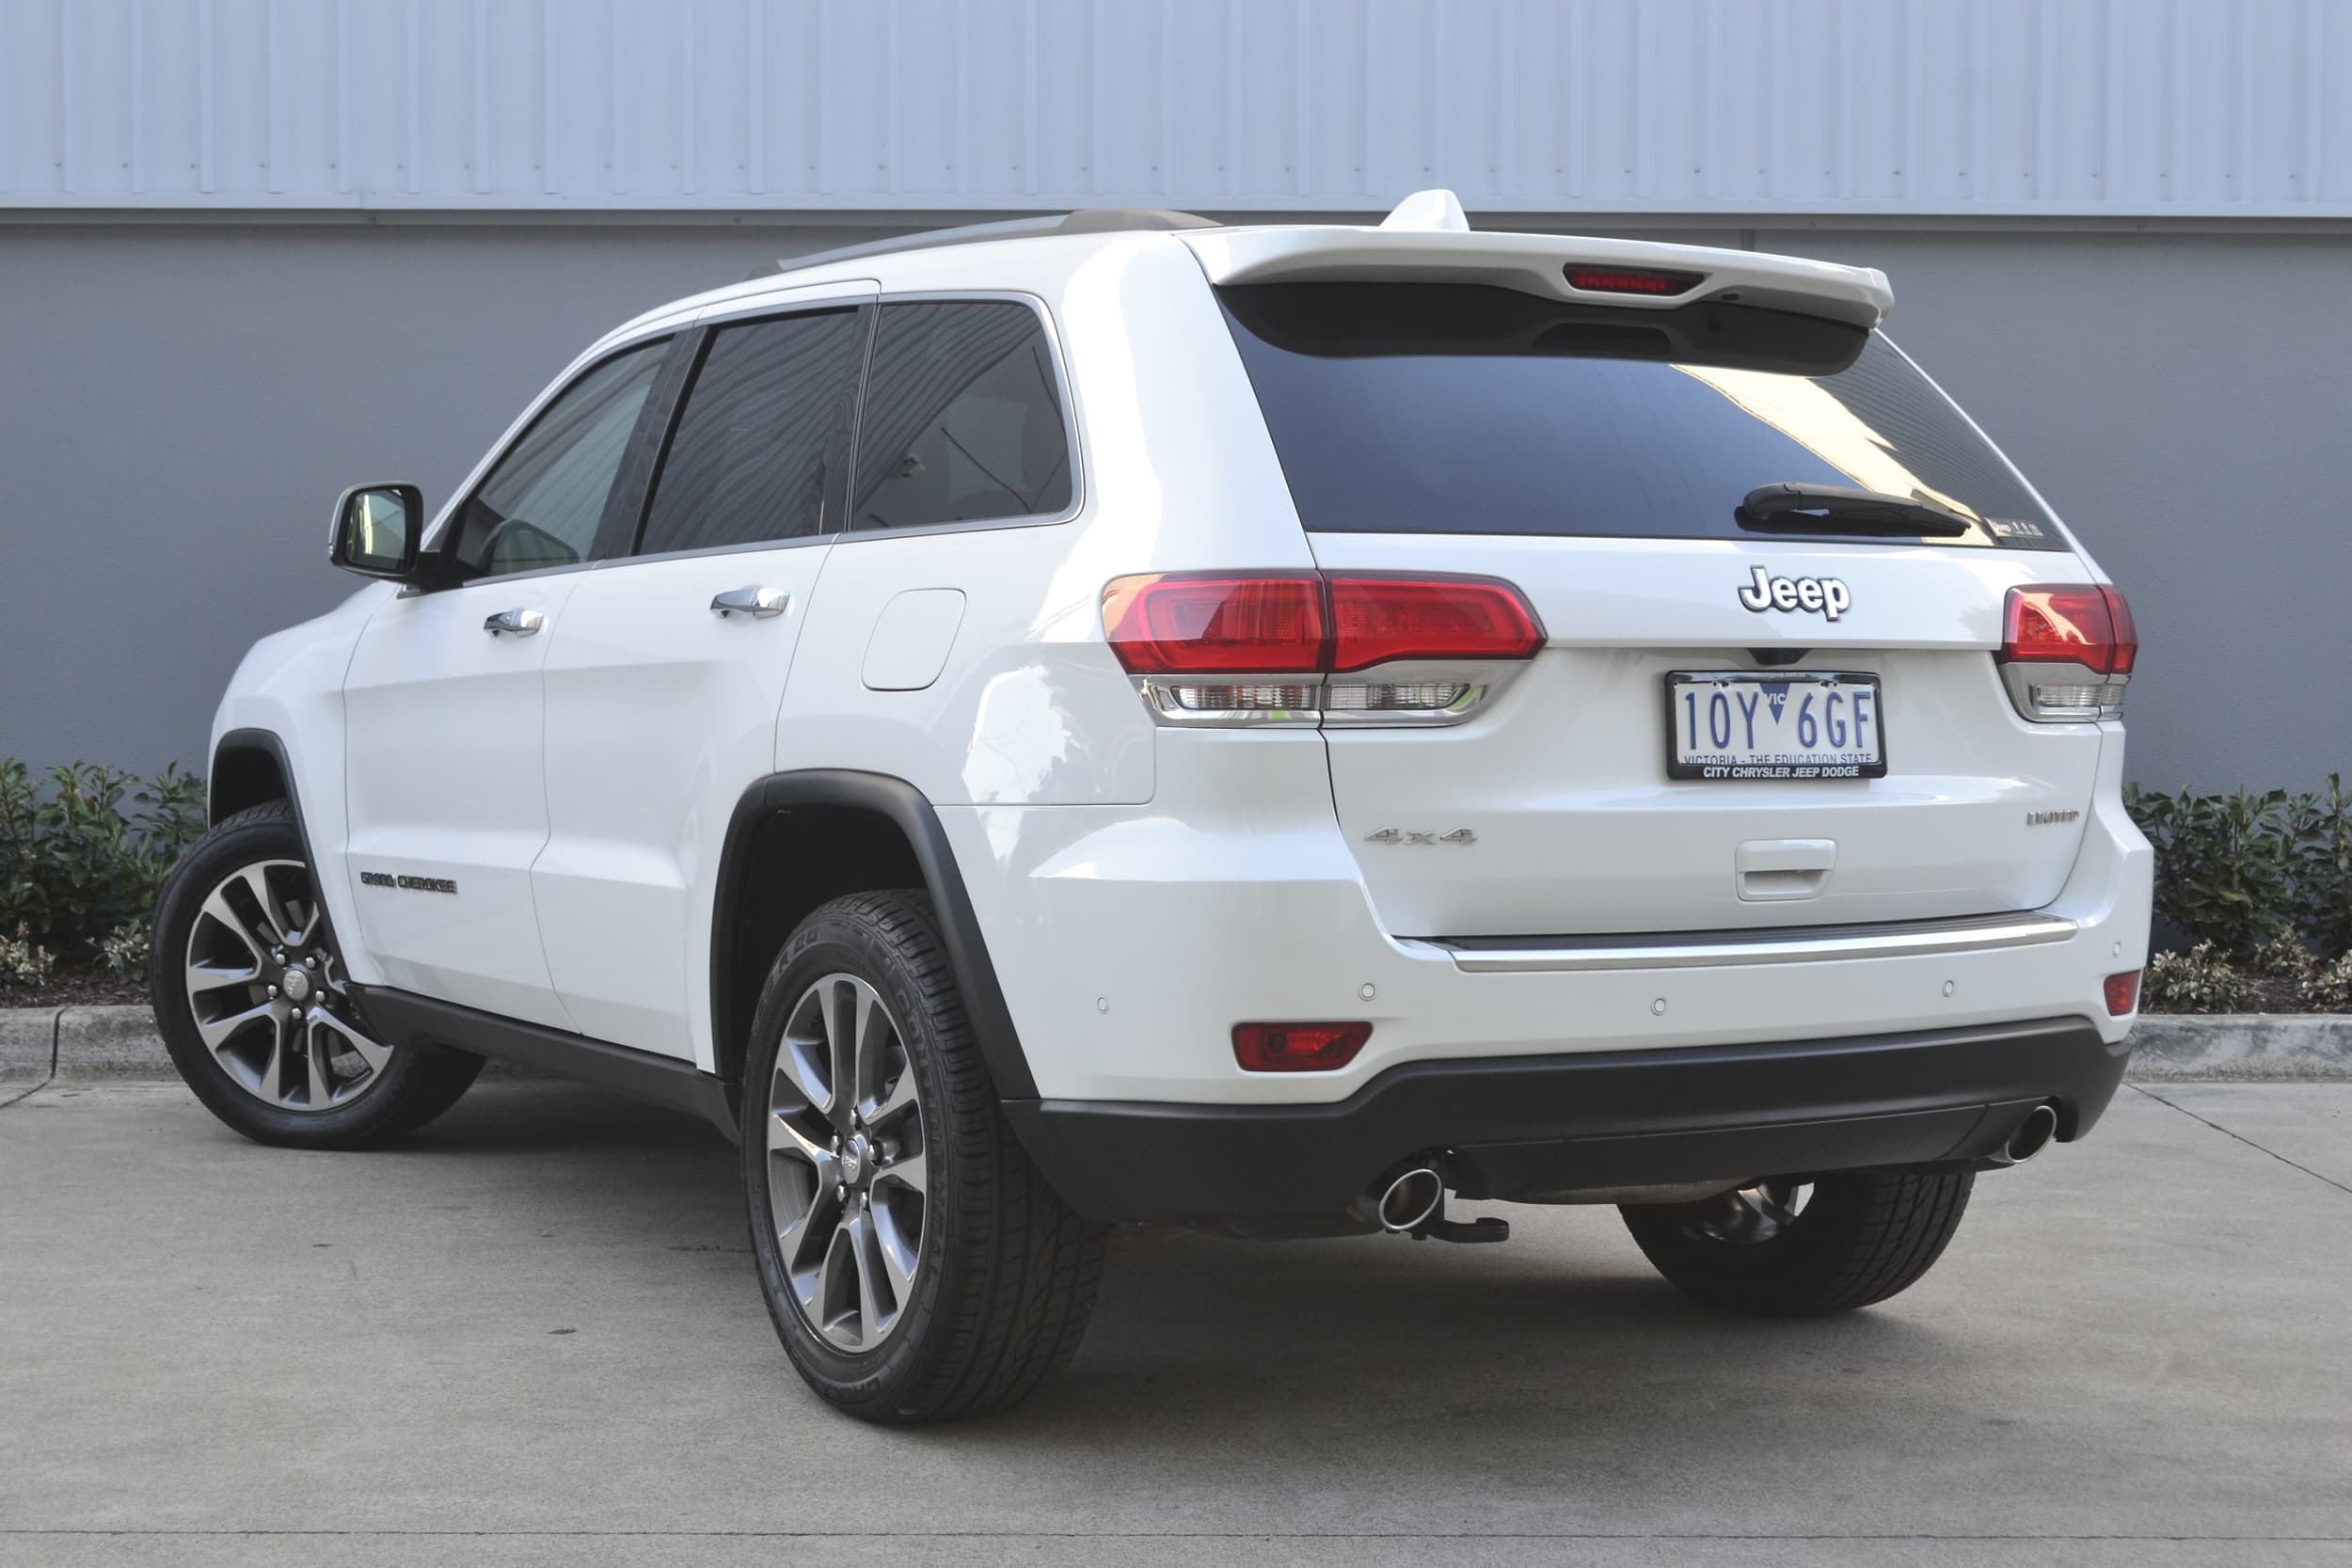 2019 Jeep Grand Cherokee Limited Auto 4x4 MY19 - image 2